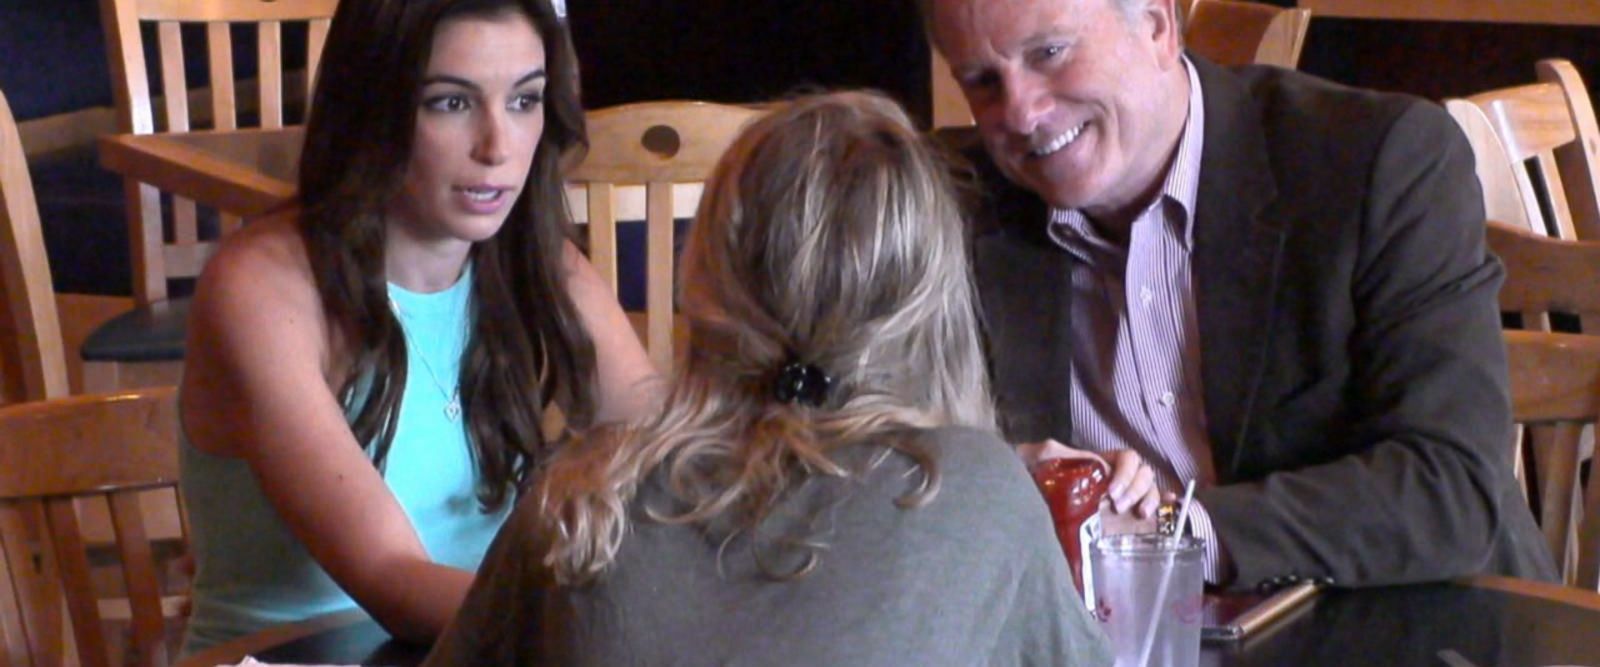 VIDEO: What Would You Do: Daughter disapproves of father's much younger girlfriend